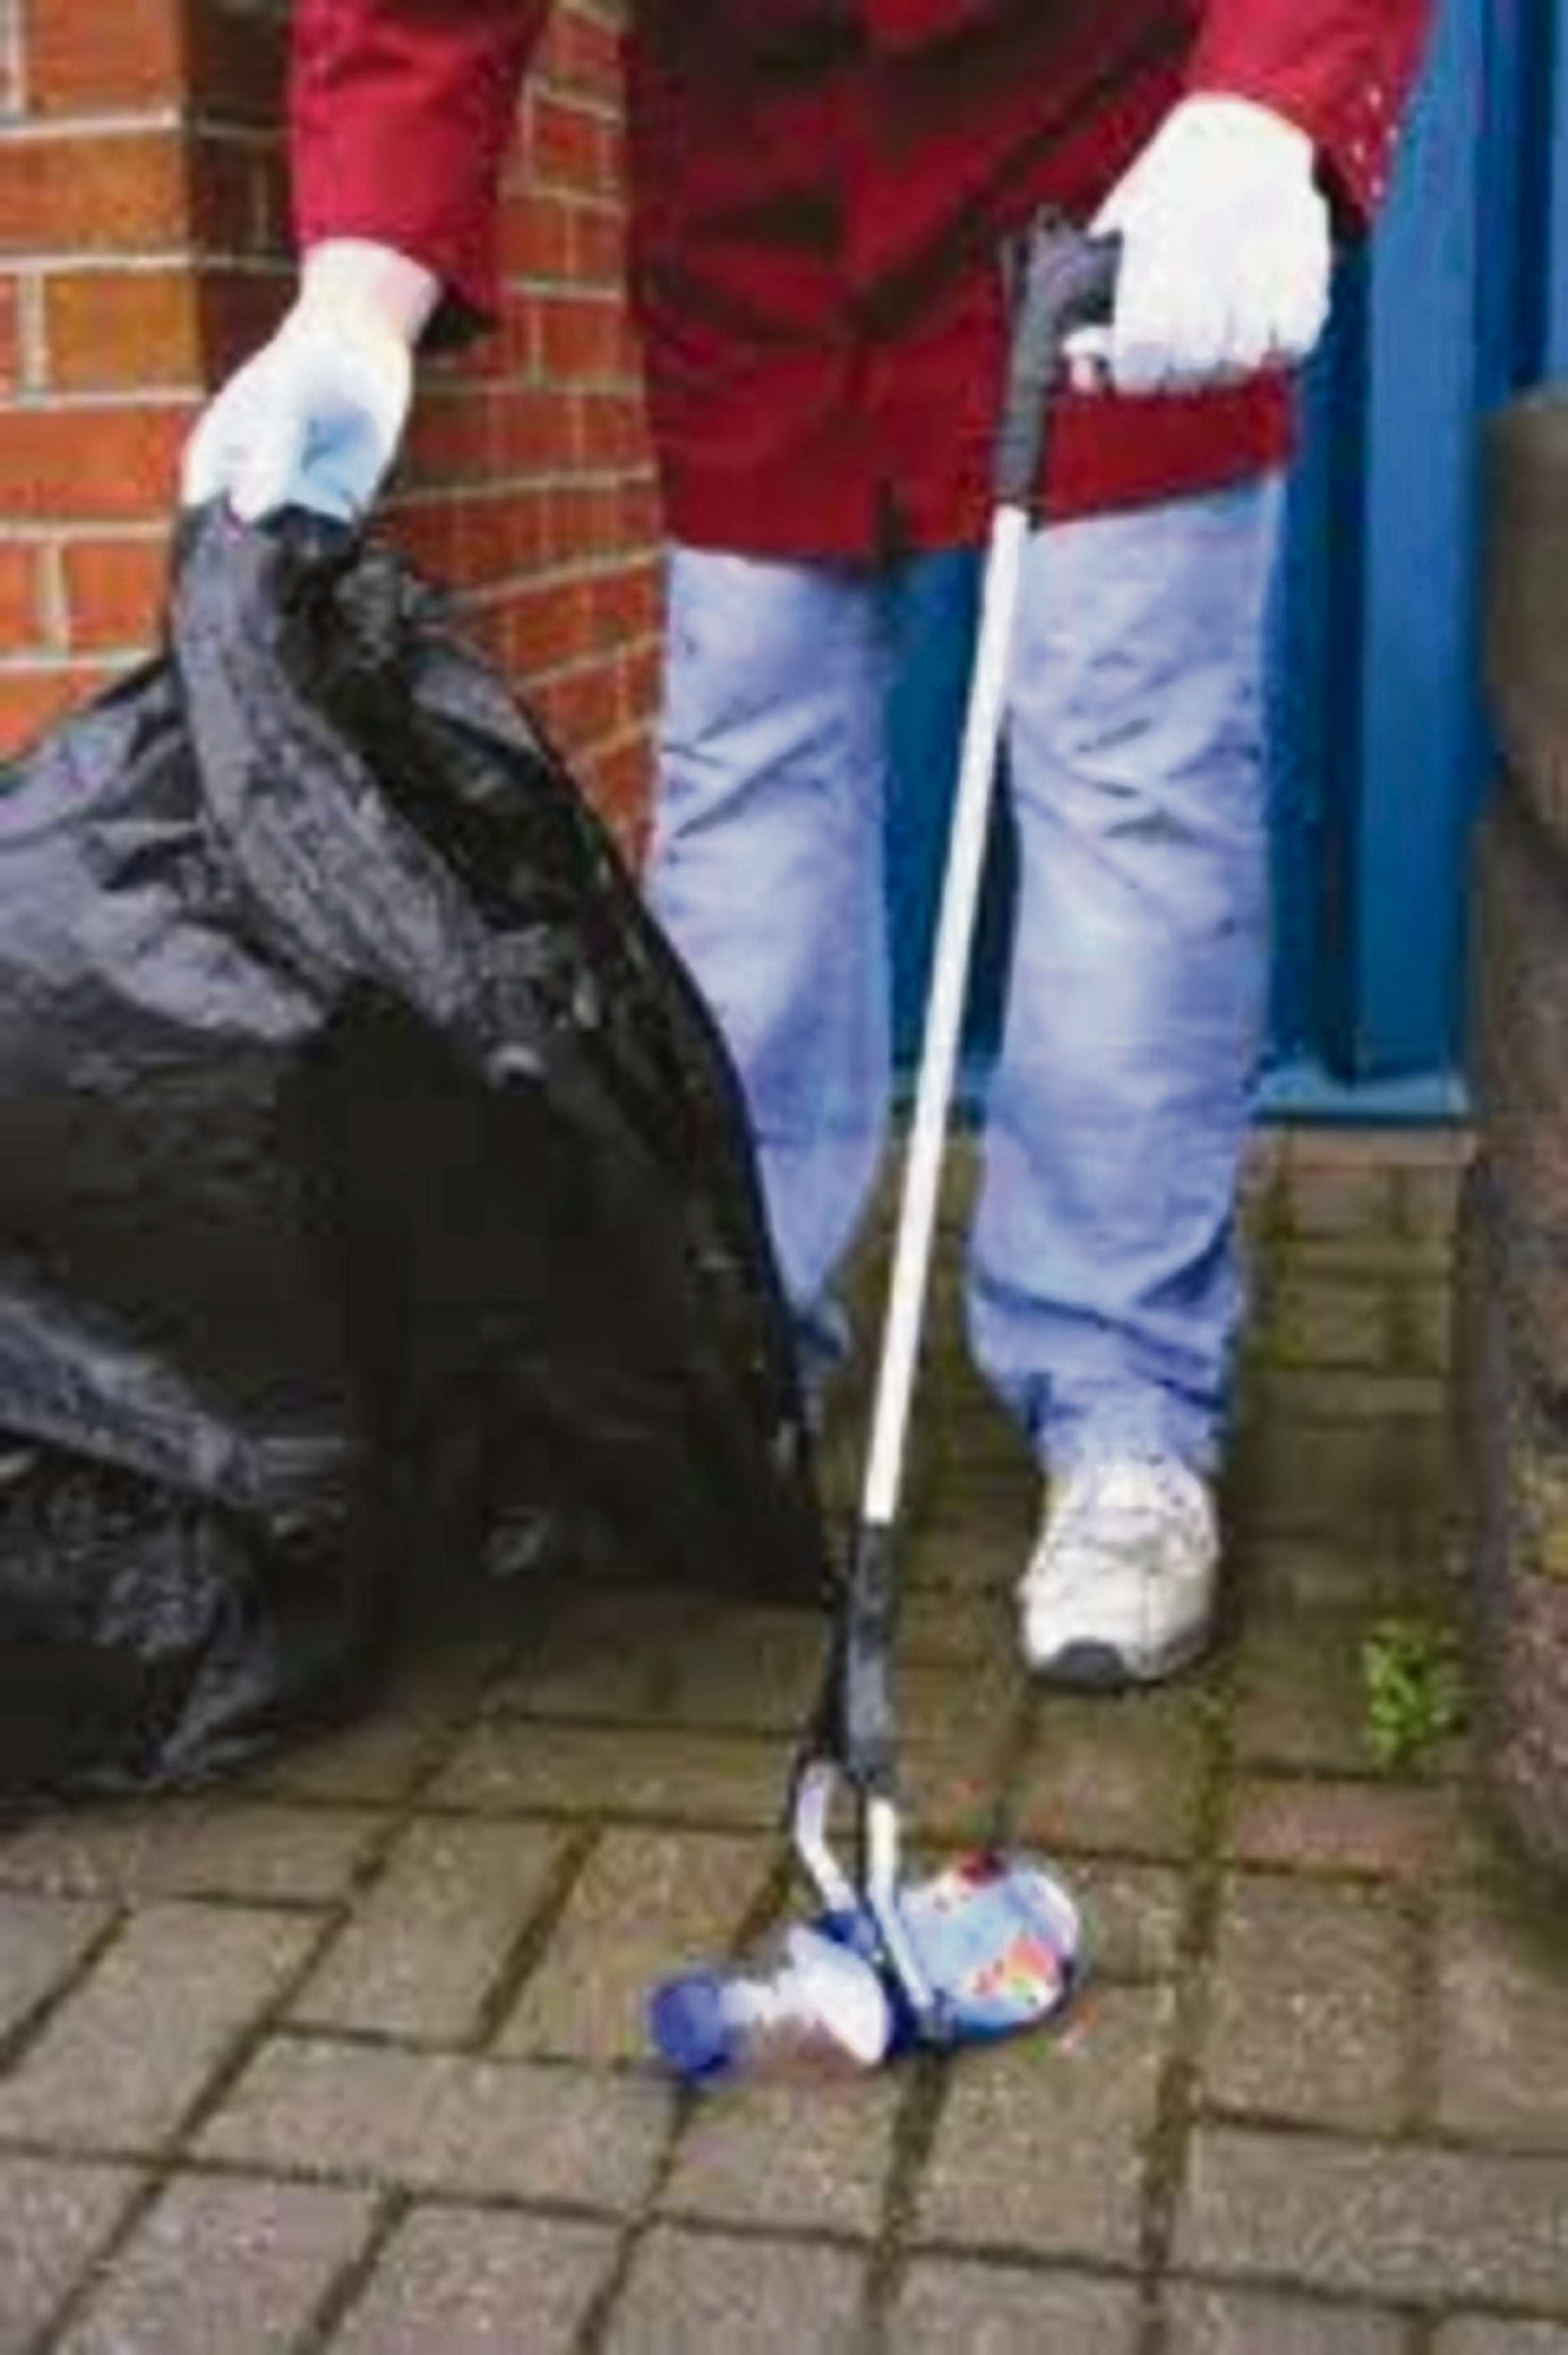 Brierley Hill litter pick participants wanted